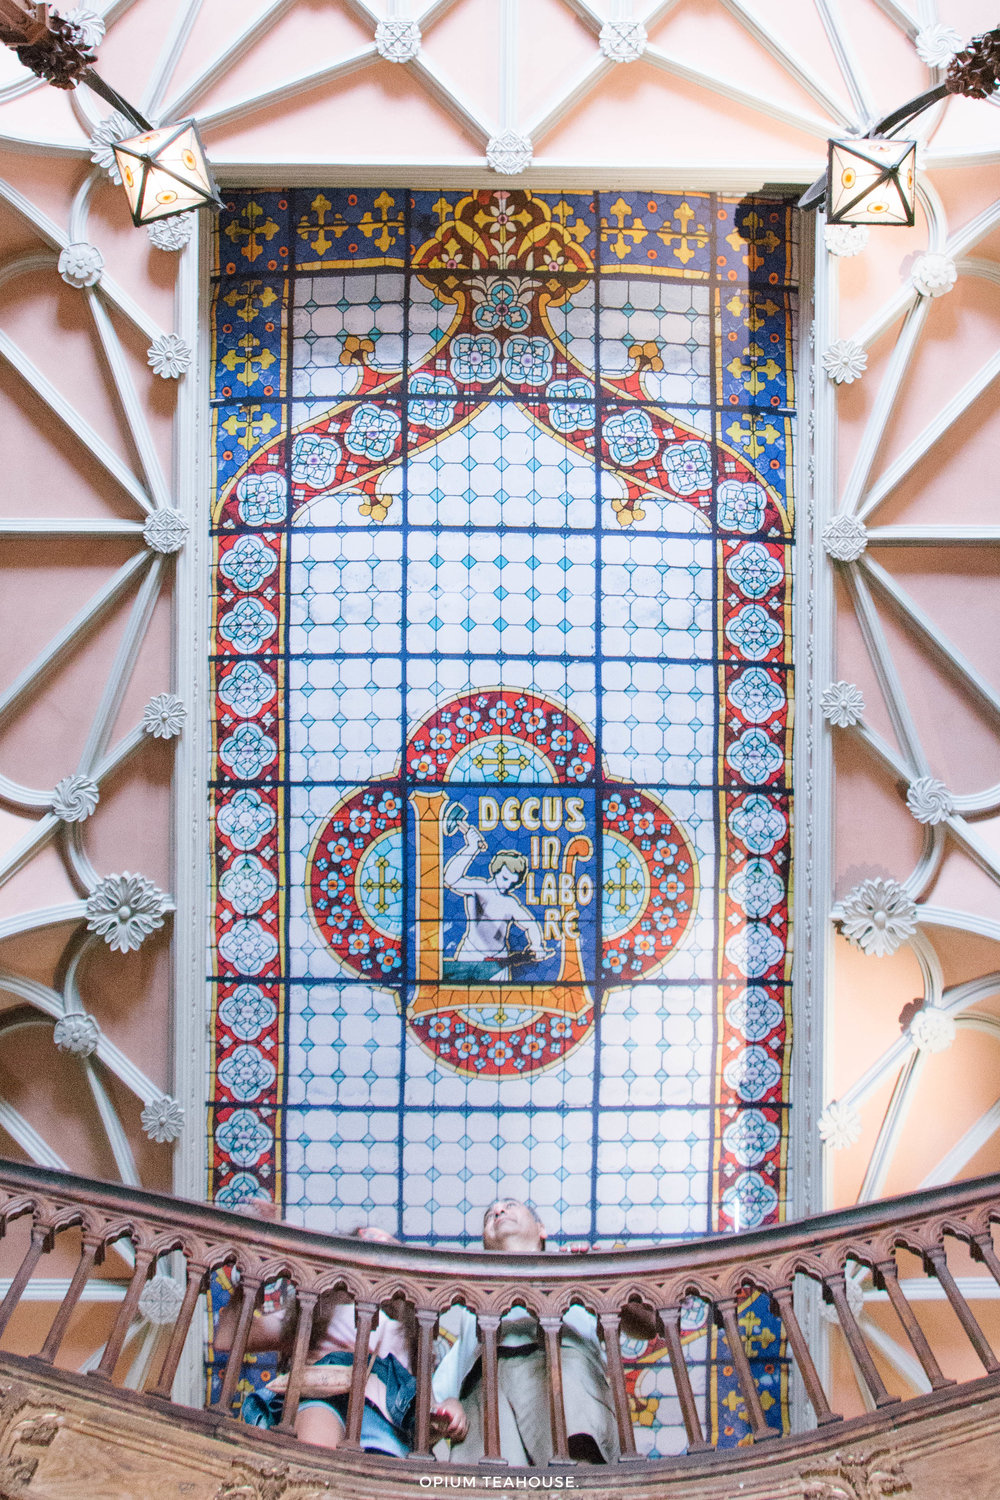 Lello bookstore ceiling — OTH.jpg